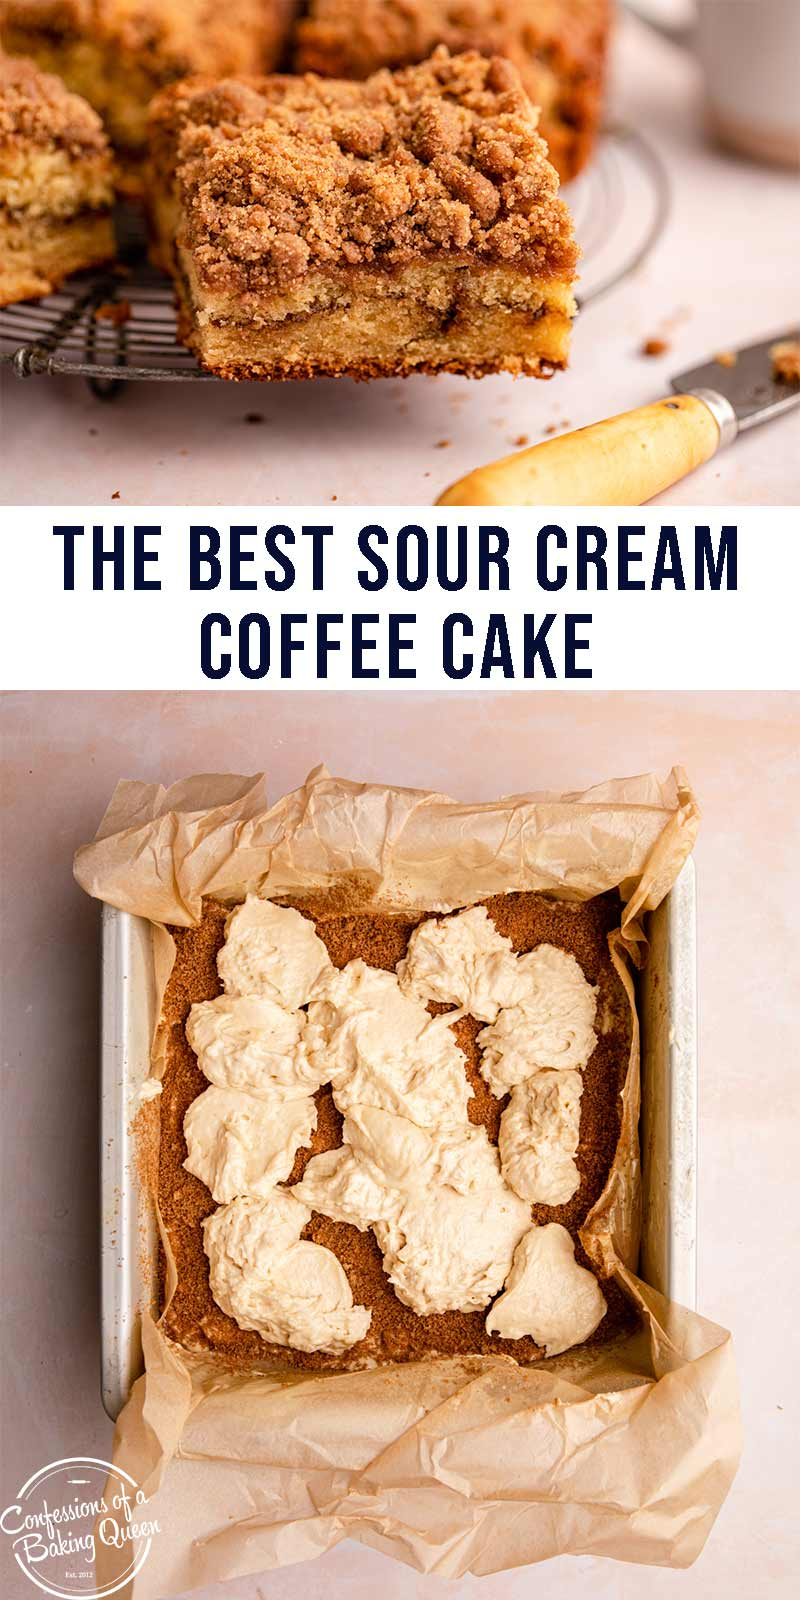 Sour Cream Coffee Cake Recipe In 2020 Sour Cream Coffee Cake Dessert Recipes Easy Easy Gluten Free Desserts